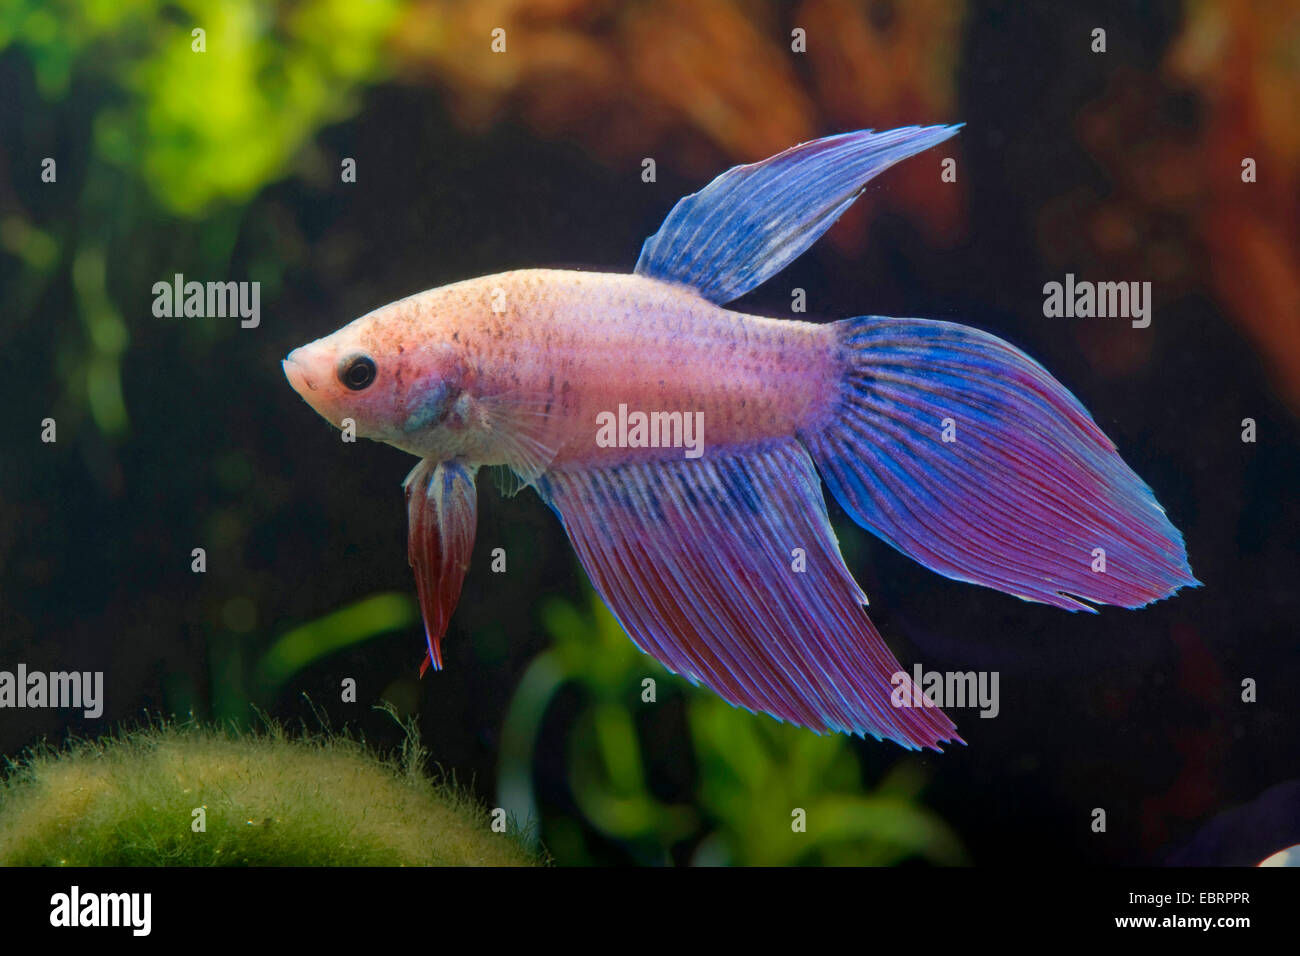 Siamese fighting fish, Siamese fighter (Betta splendens), breed Longtail Mirabelle - Stock Image